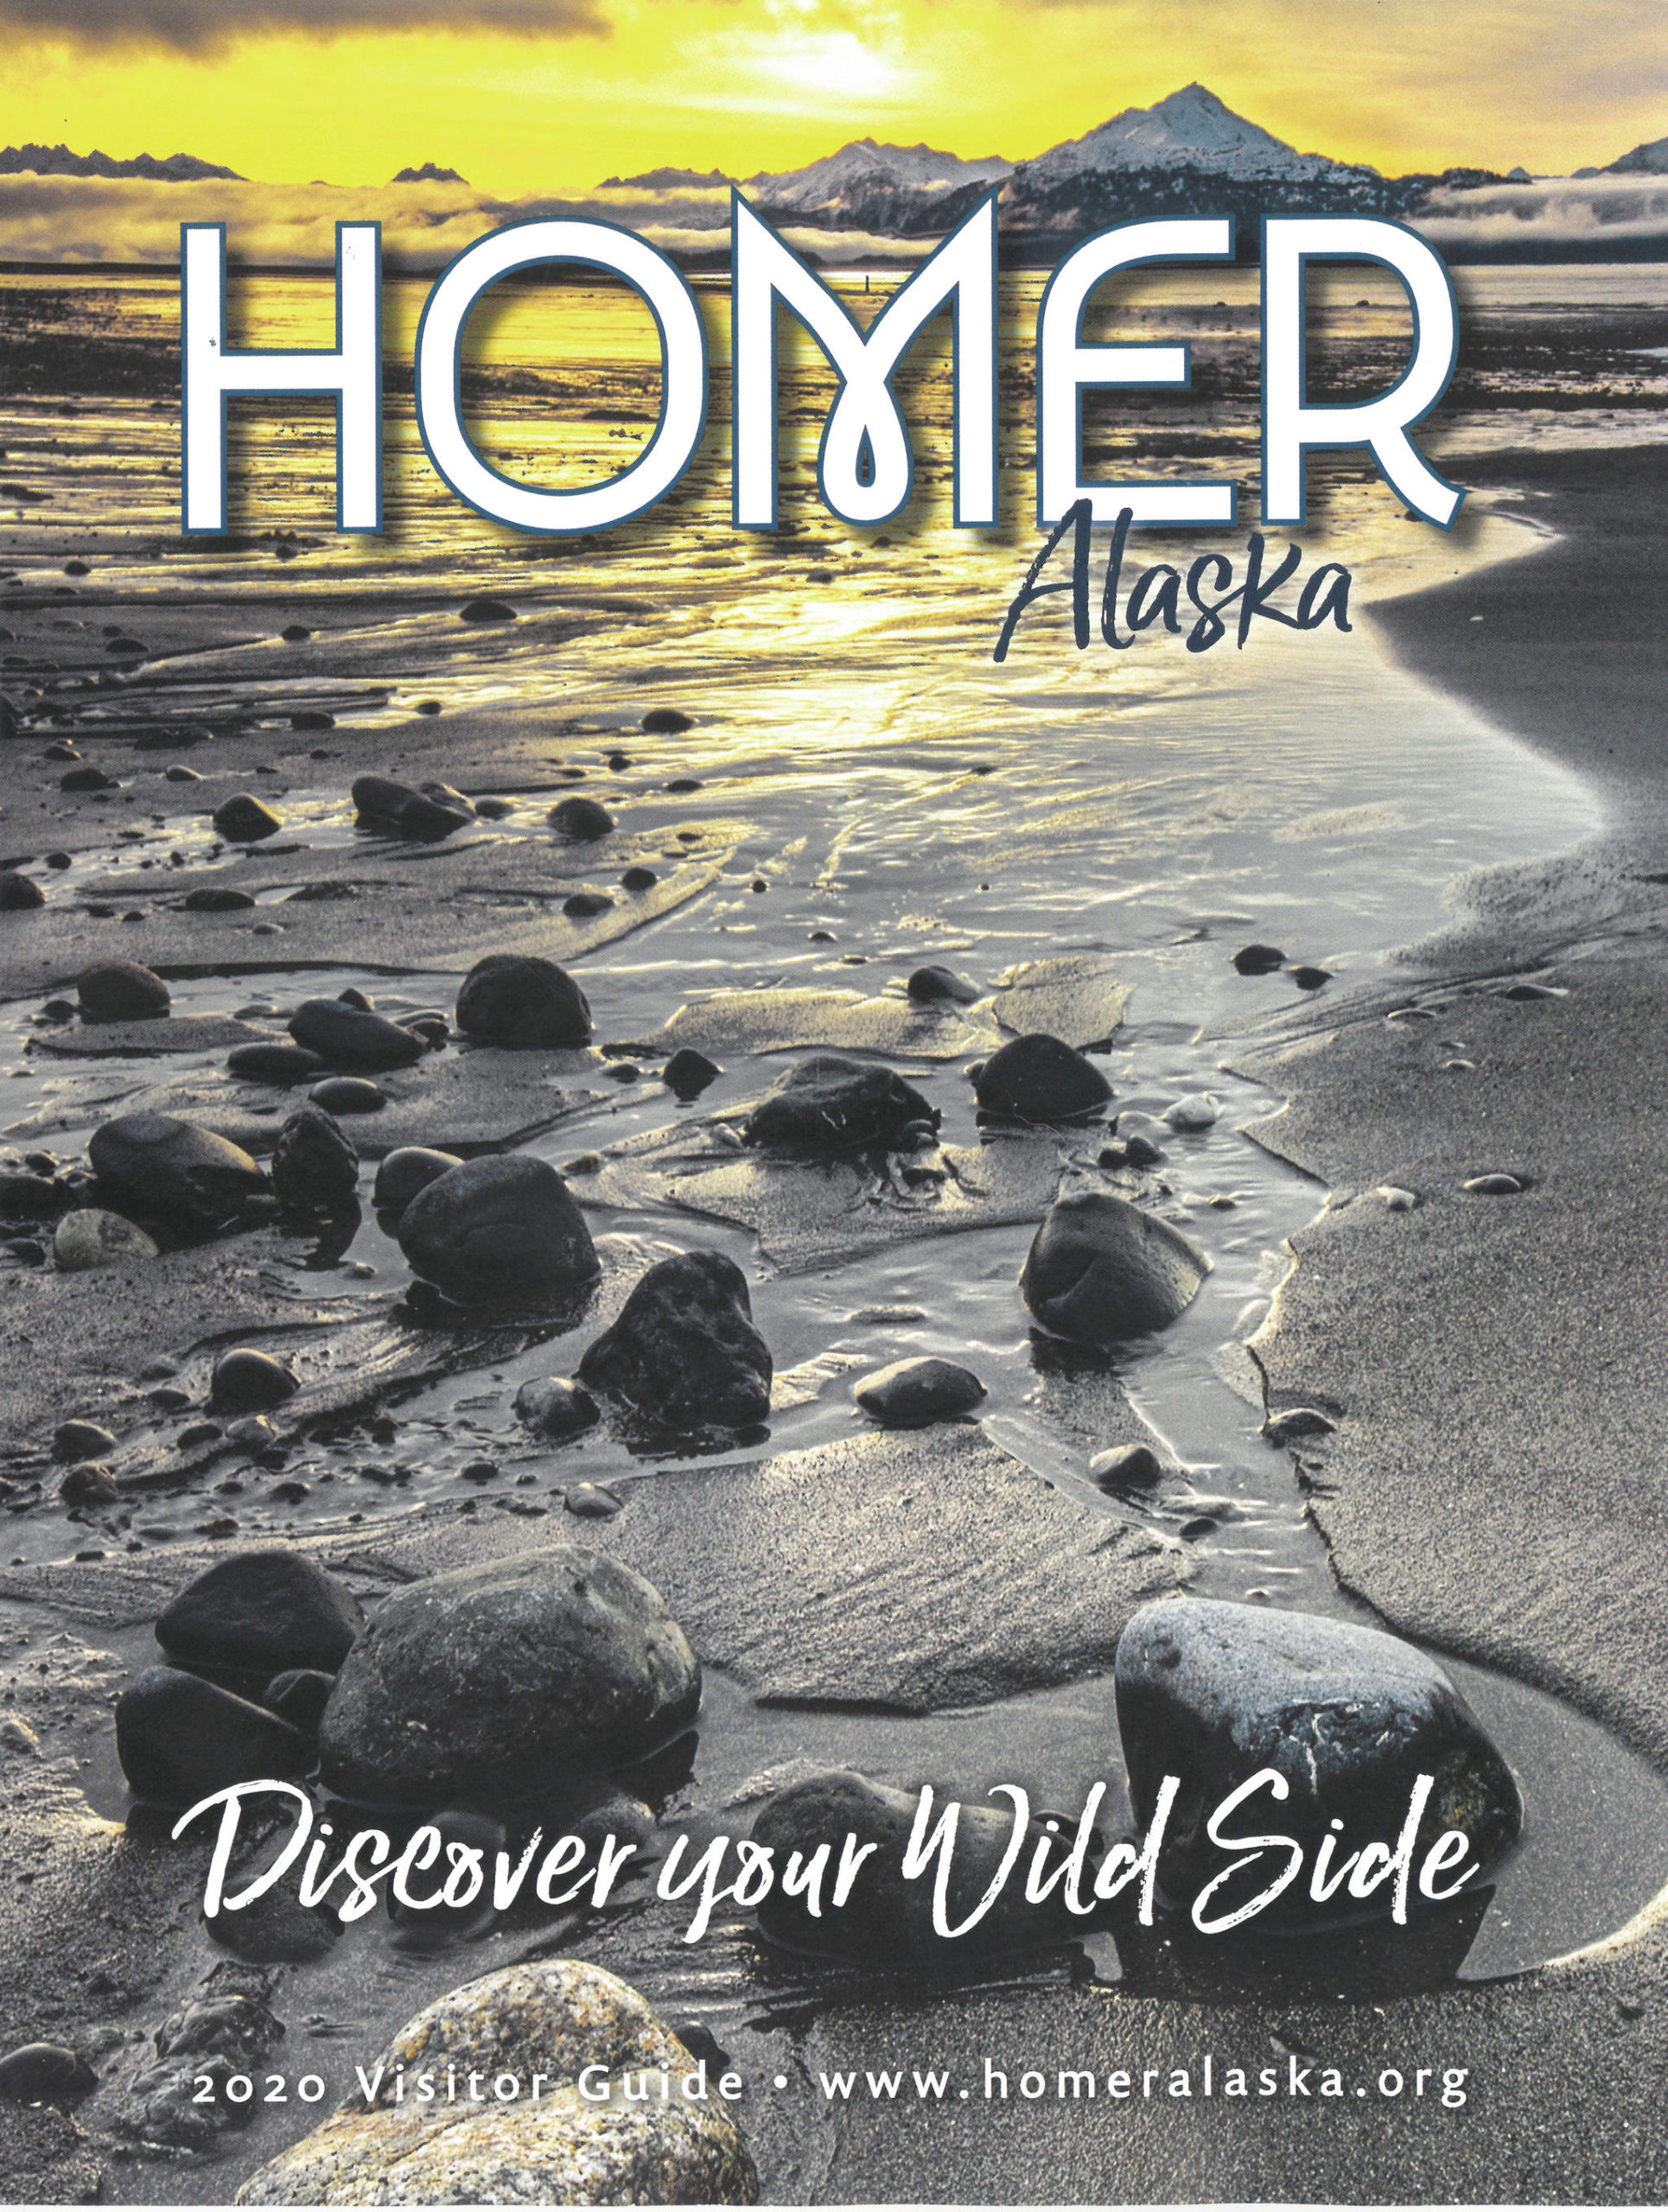 The cover of the Homer Chamber of Commerce and Visitor Center 2020 Visitor Guide was released at the chamber's annual meeting on Jan. 21, 2020, at the Alaska Islands and Ocean Visitor Center in Homer, Alaska. Edward L. Marsh took the photo on the cover. (Photo courtesy Homer Chamber of Commerce and Visitor Center)